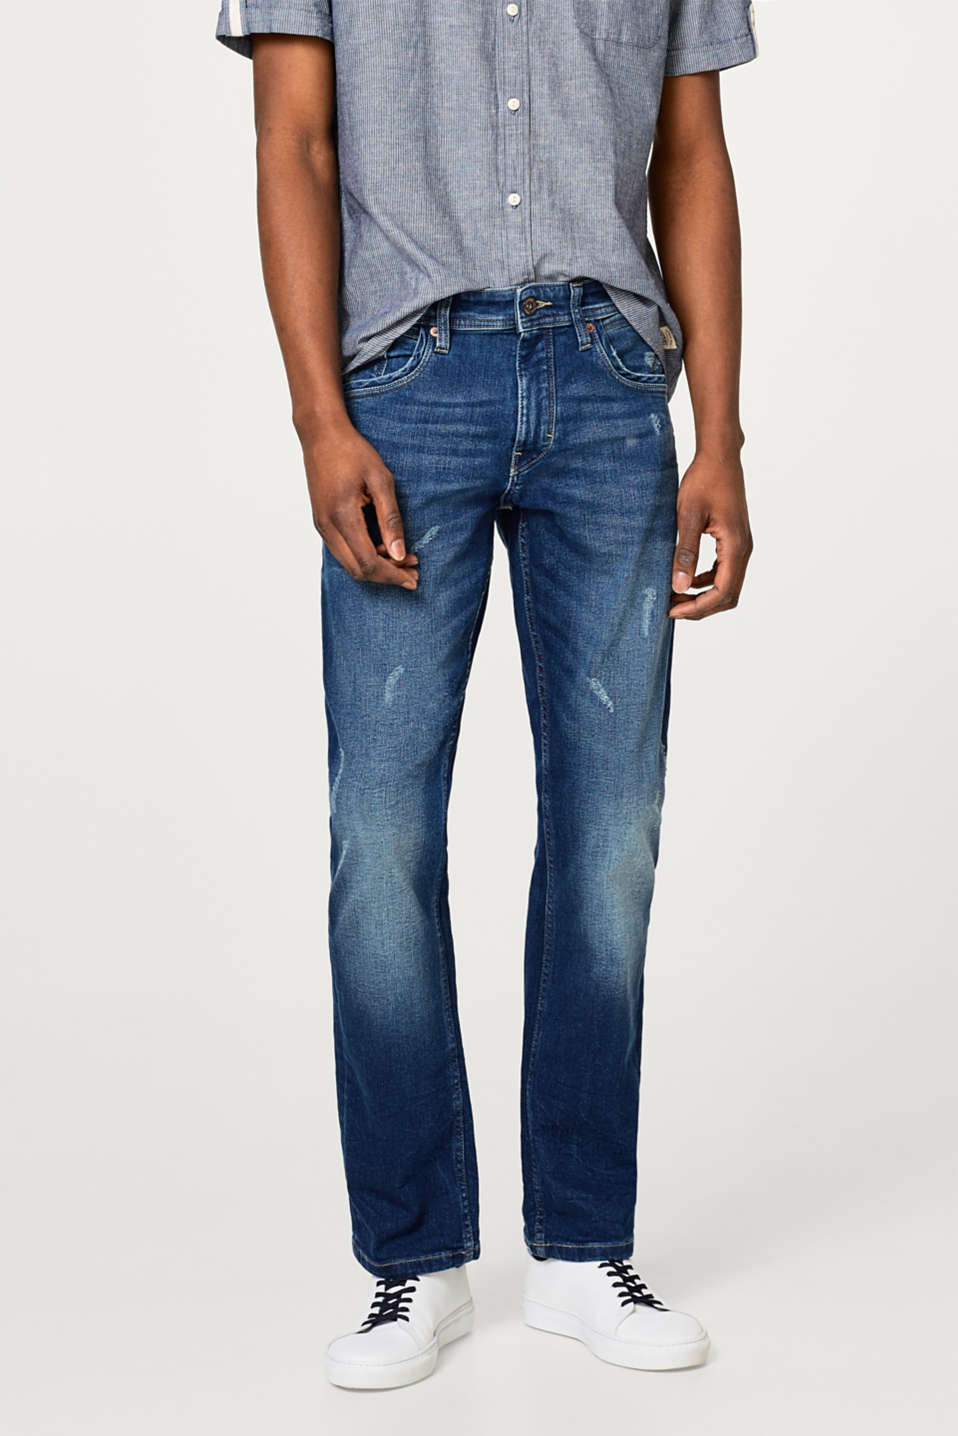 Esprit - Stretch jeans with slight vintage effects